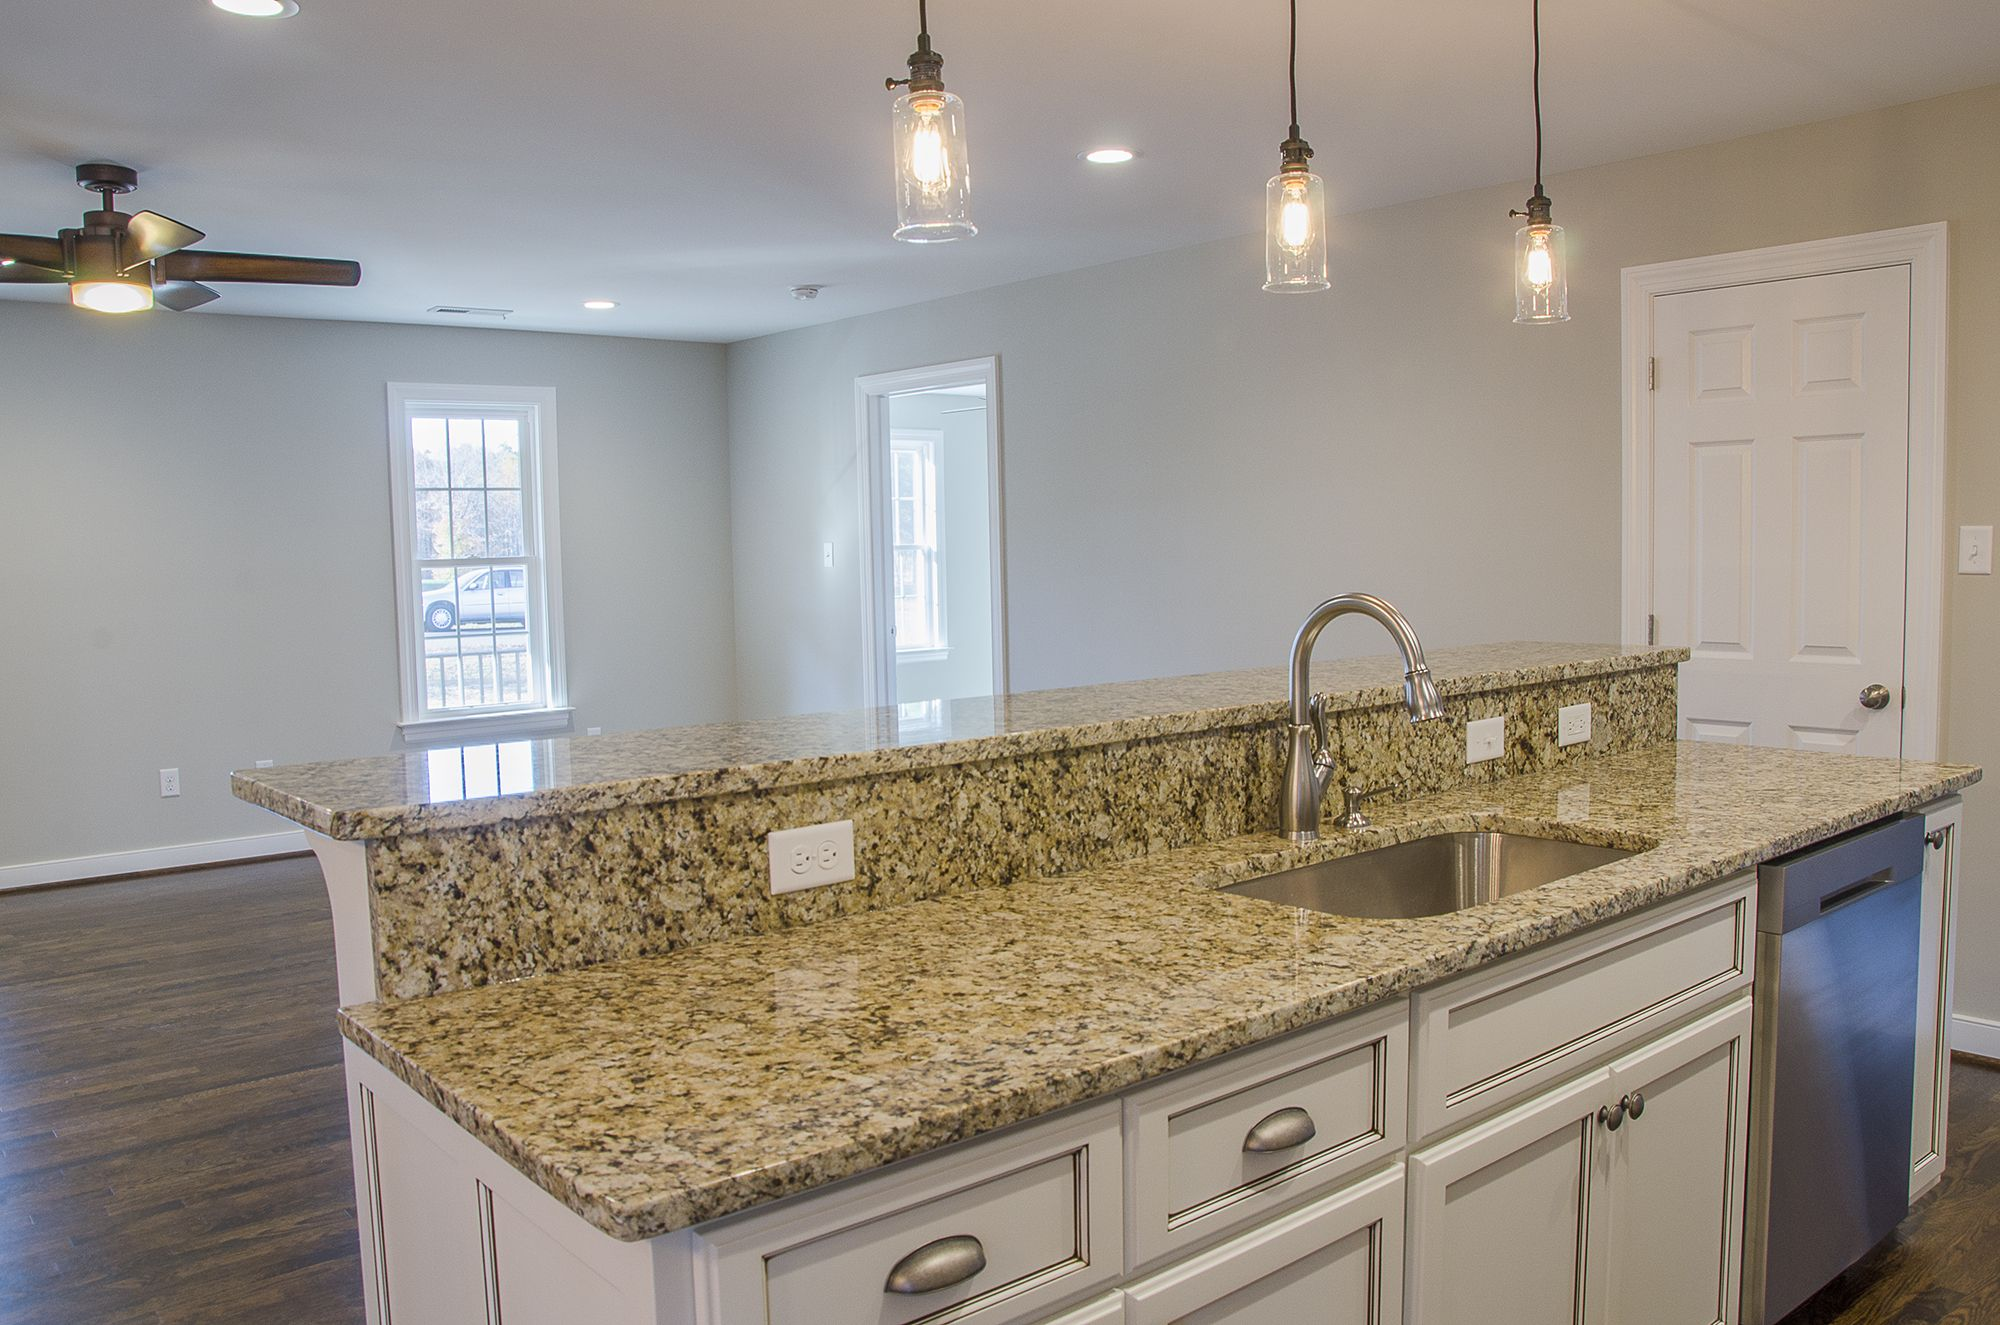 Large Kitchen Island With Granite Countertops And Farmhouse Style Cabinets The Island Features A Trio O Best Home Builders Large Kitchen Island Home Builders